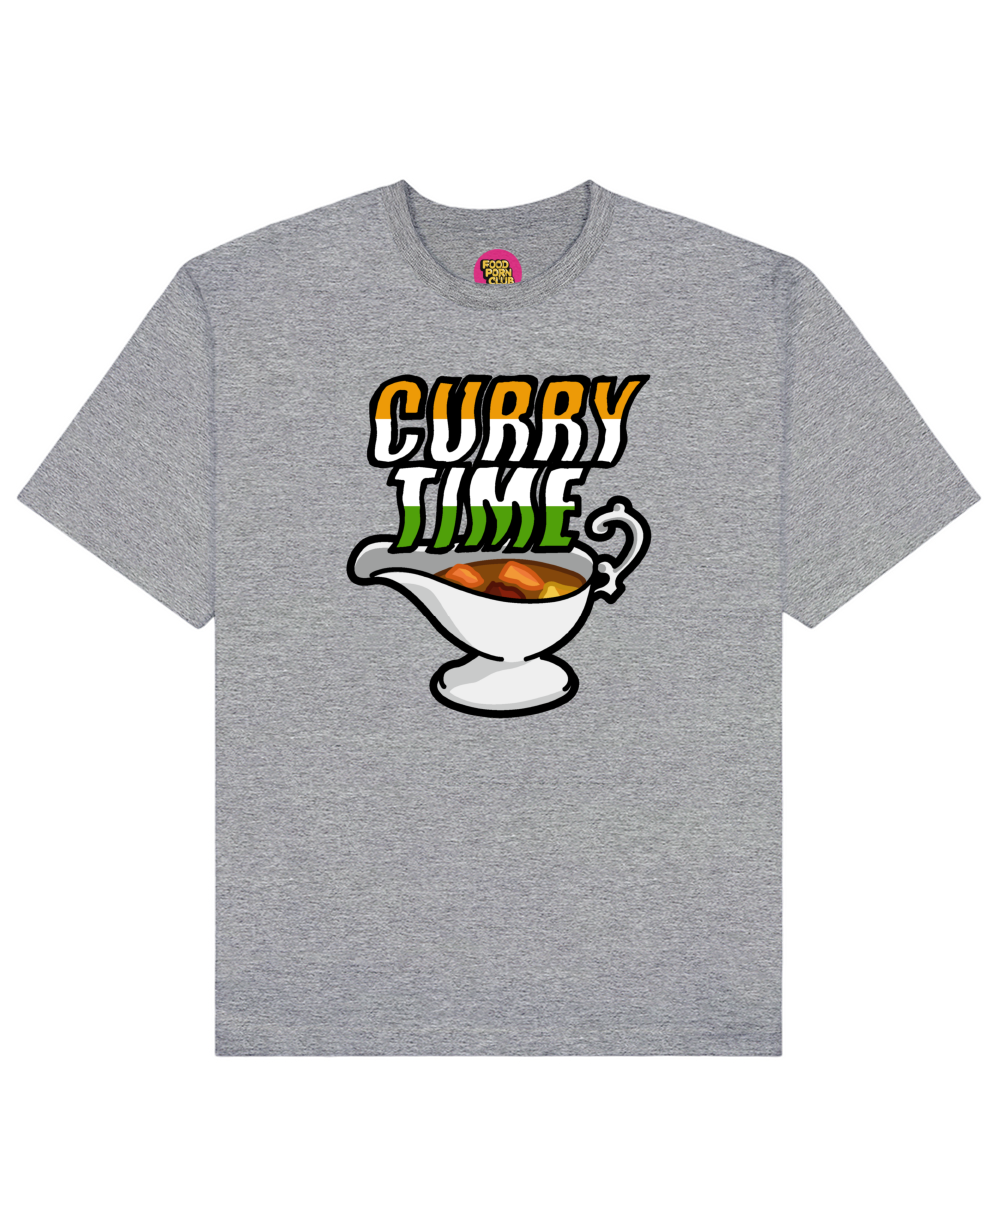 Curry Time Print T-Shirt in Gray - T-Shirts - FOOD PORN CLUB - BRANMA